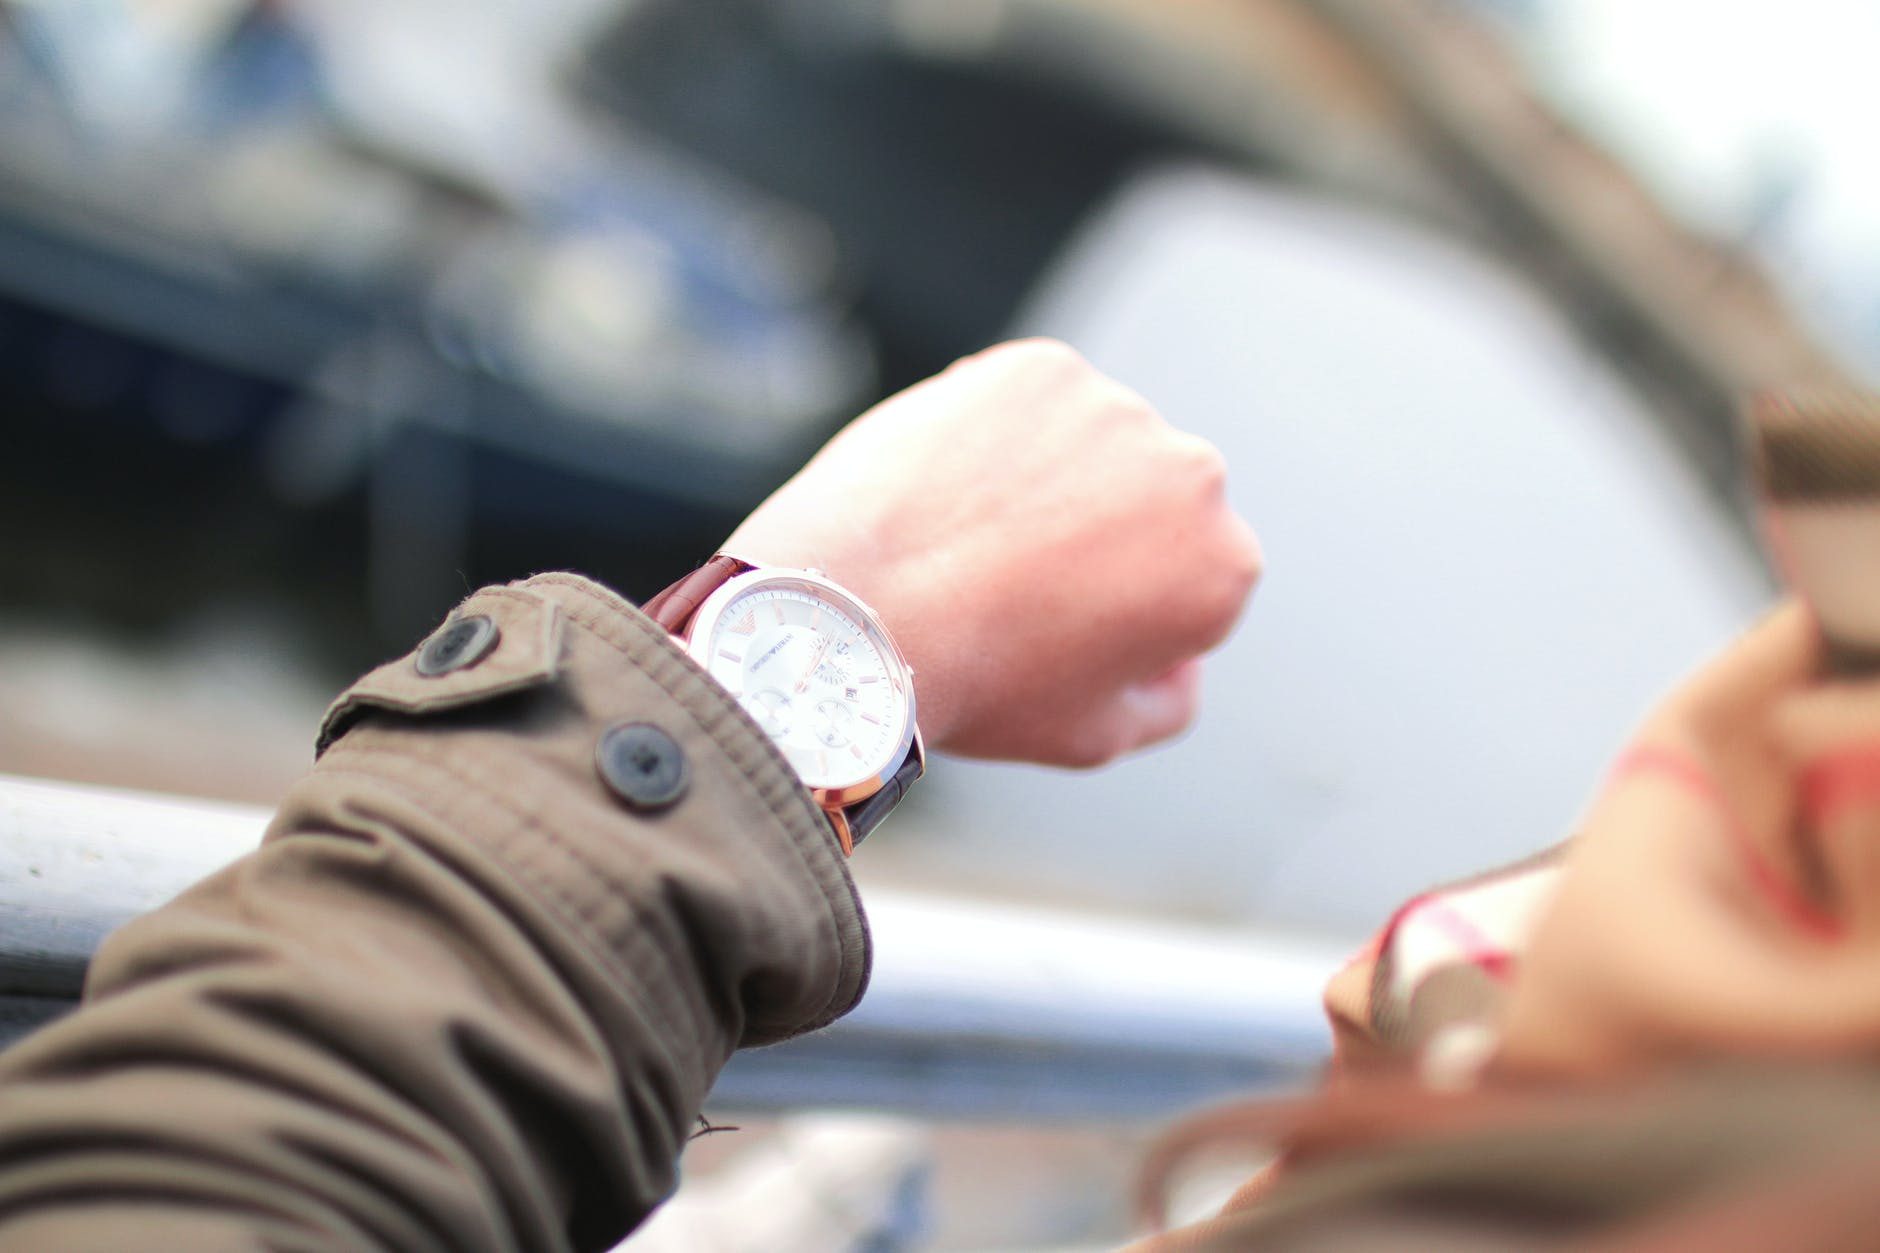 A man looks down on his wristwatch, waiting.